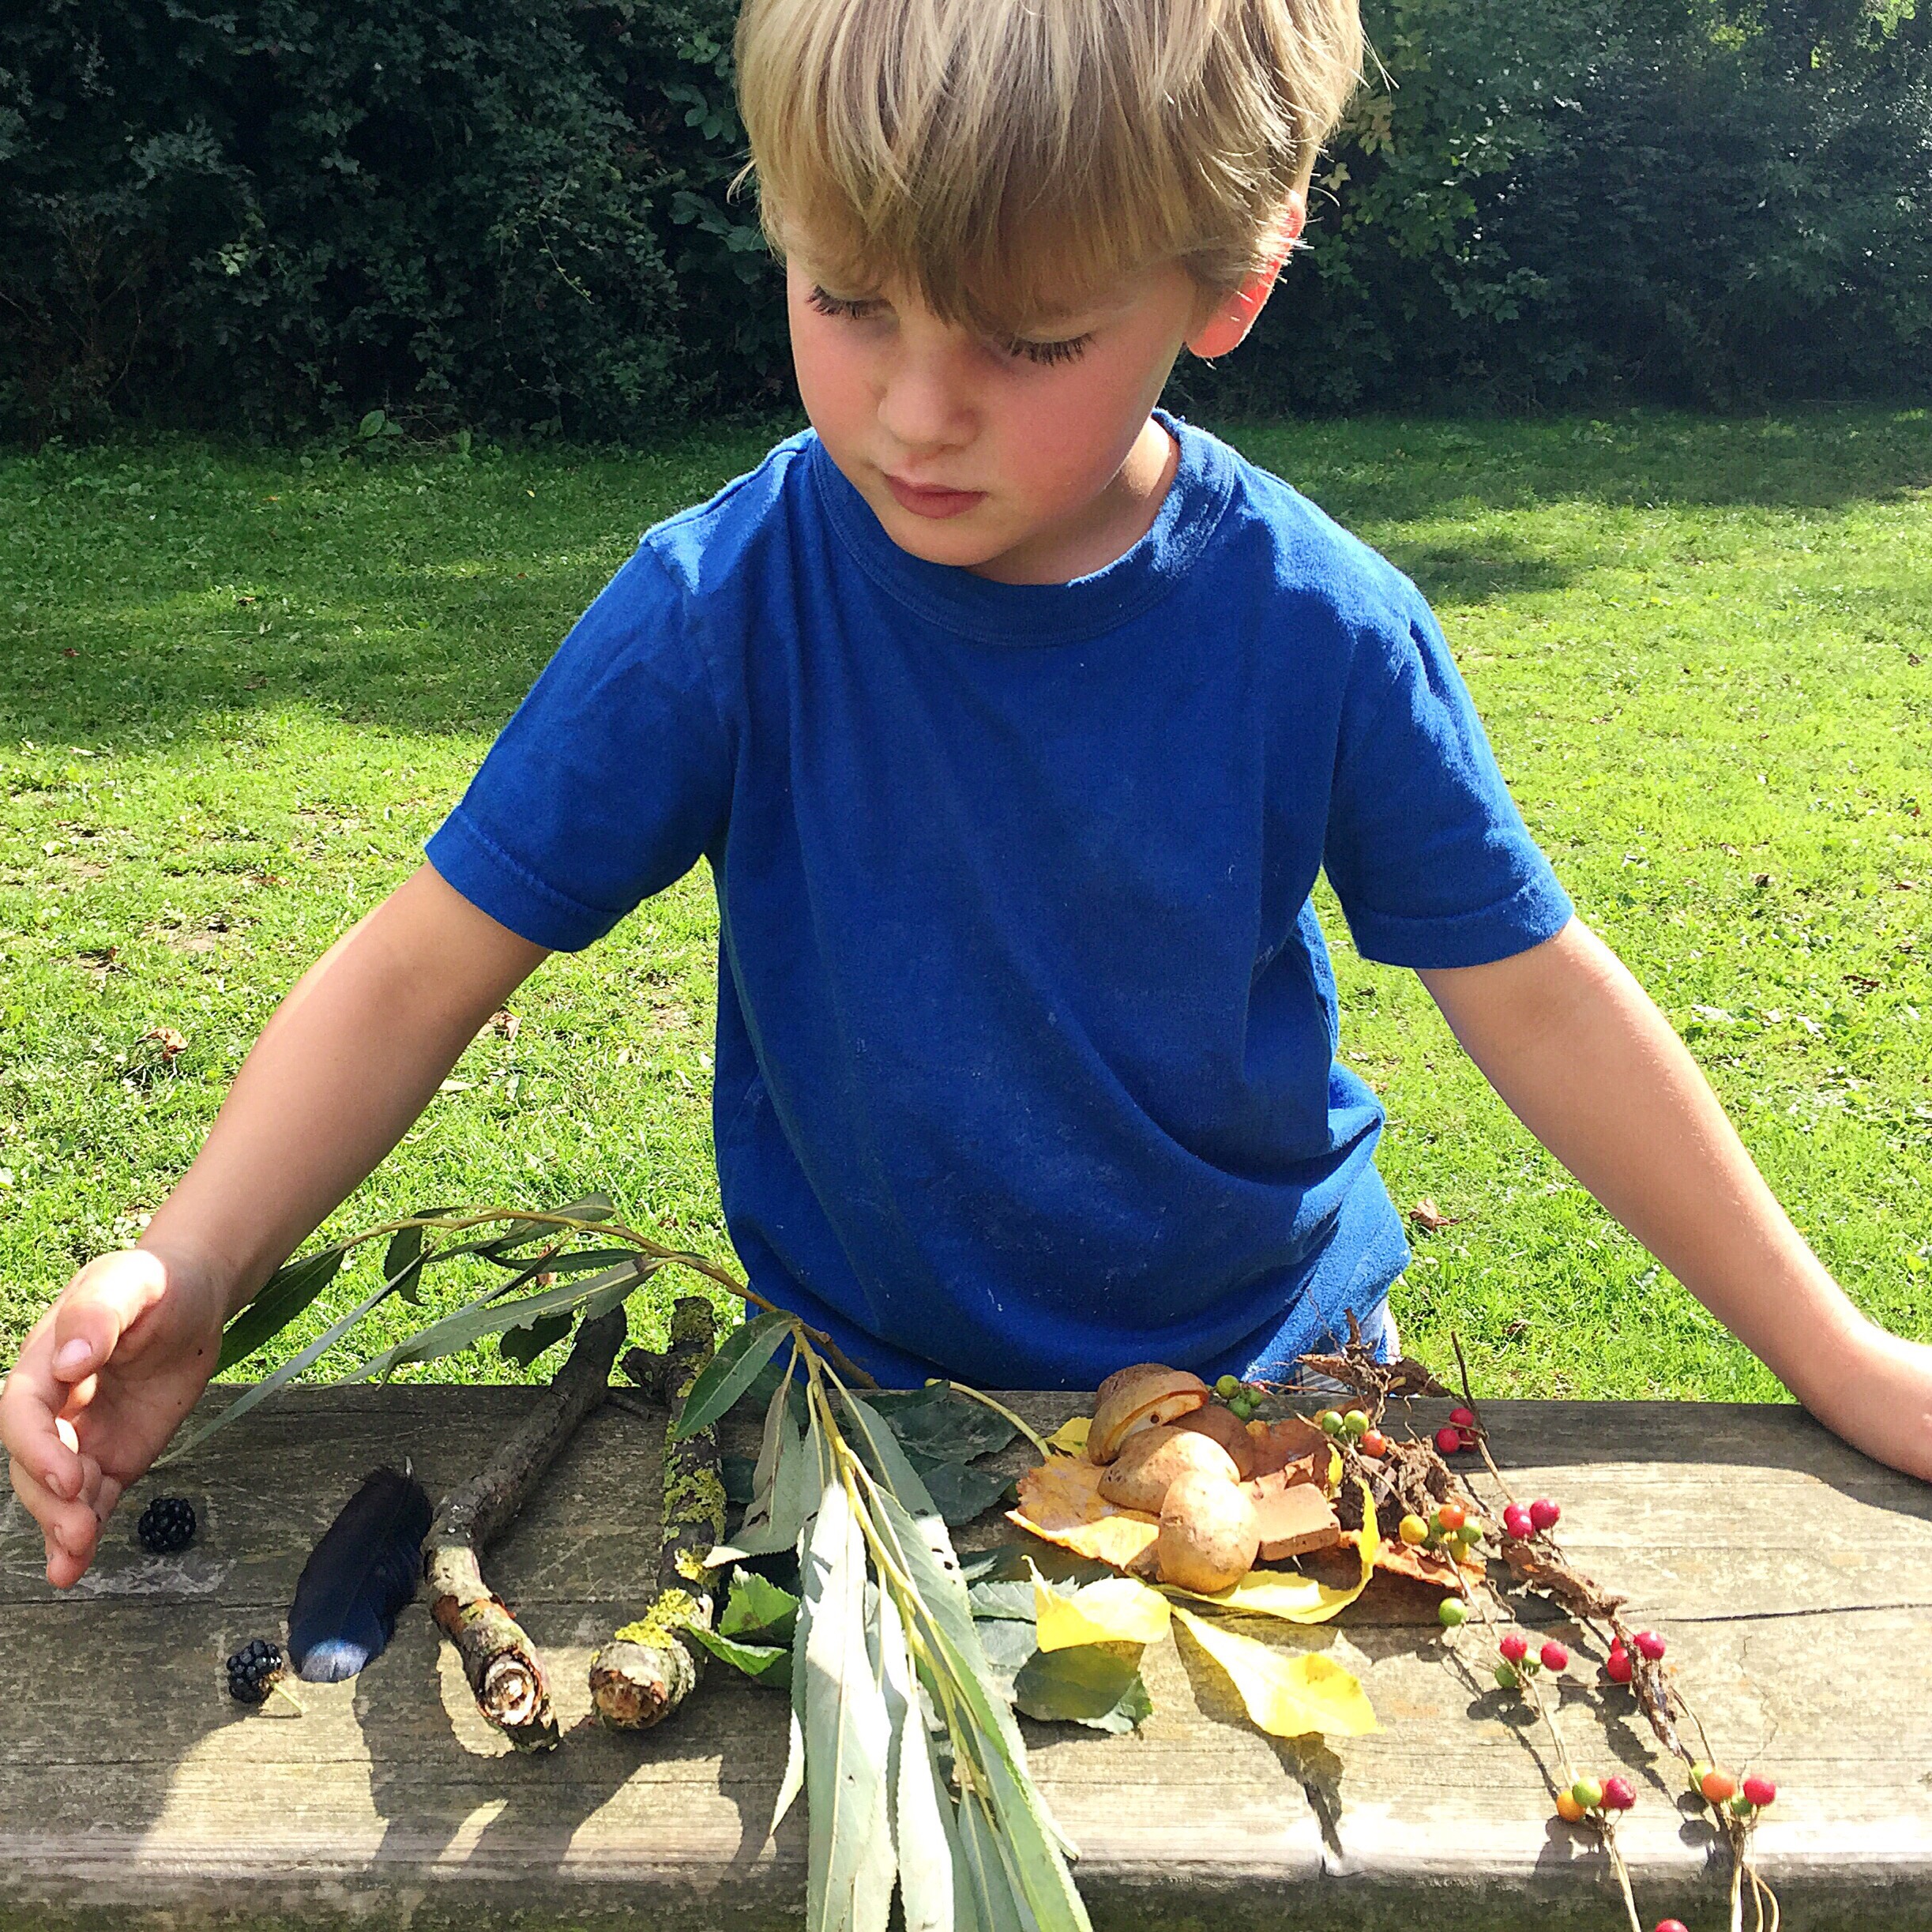 My son organising the colourful items he found for his nature rainbow.